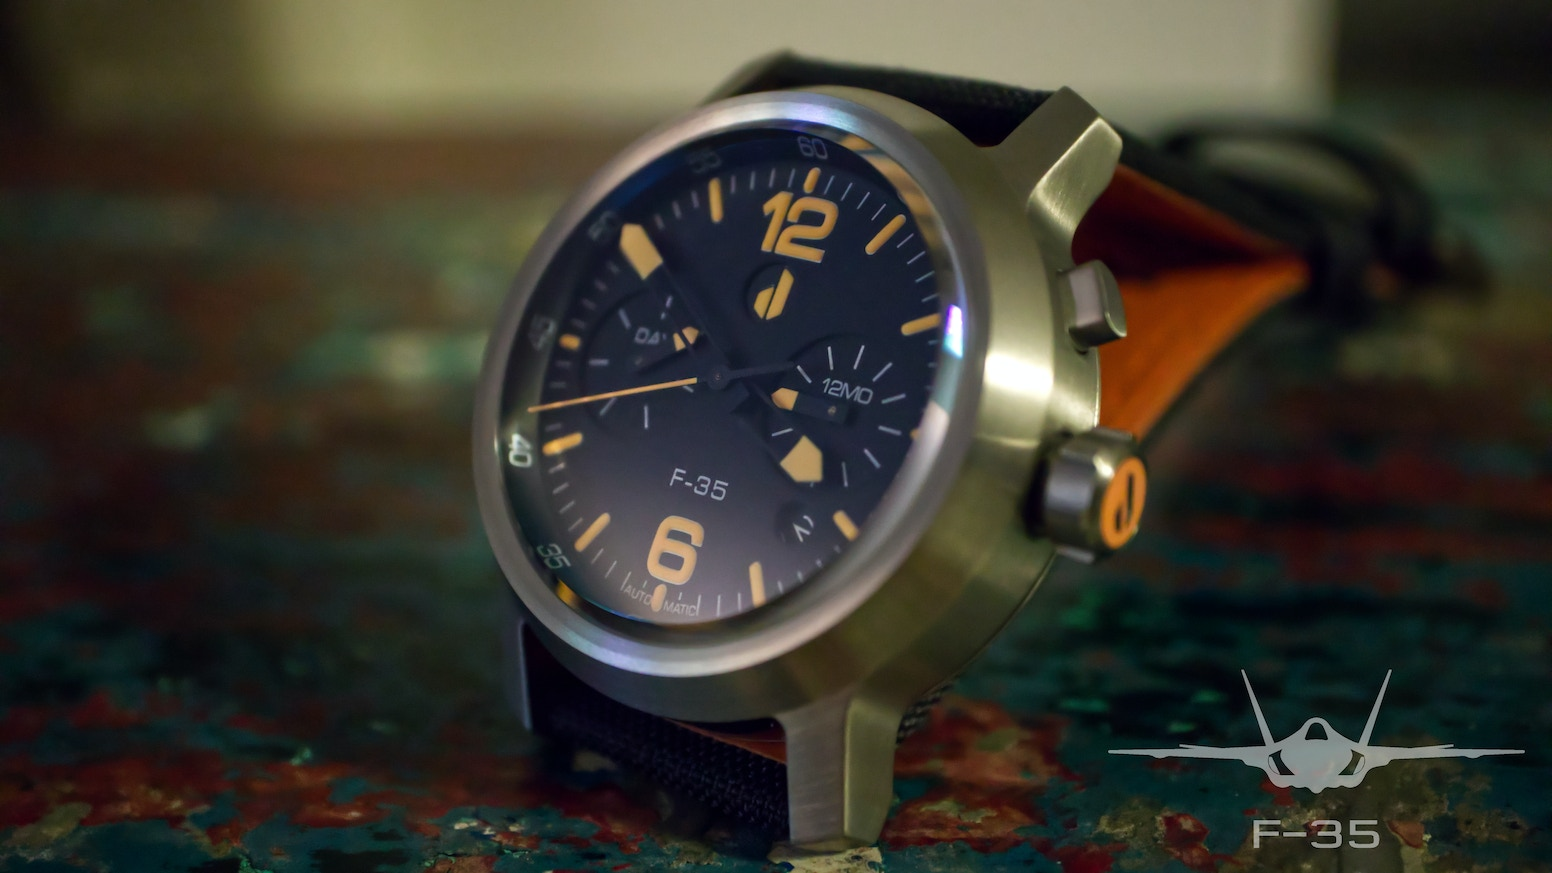 Bold, yet uniquely exquisite aviation styled automatic watches which are hard wearing, affordable and reliable timepieces.